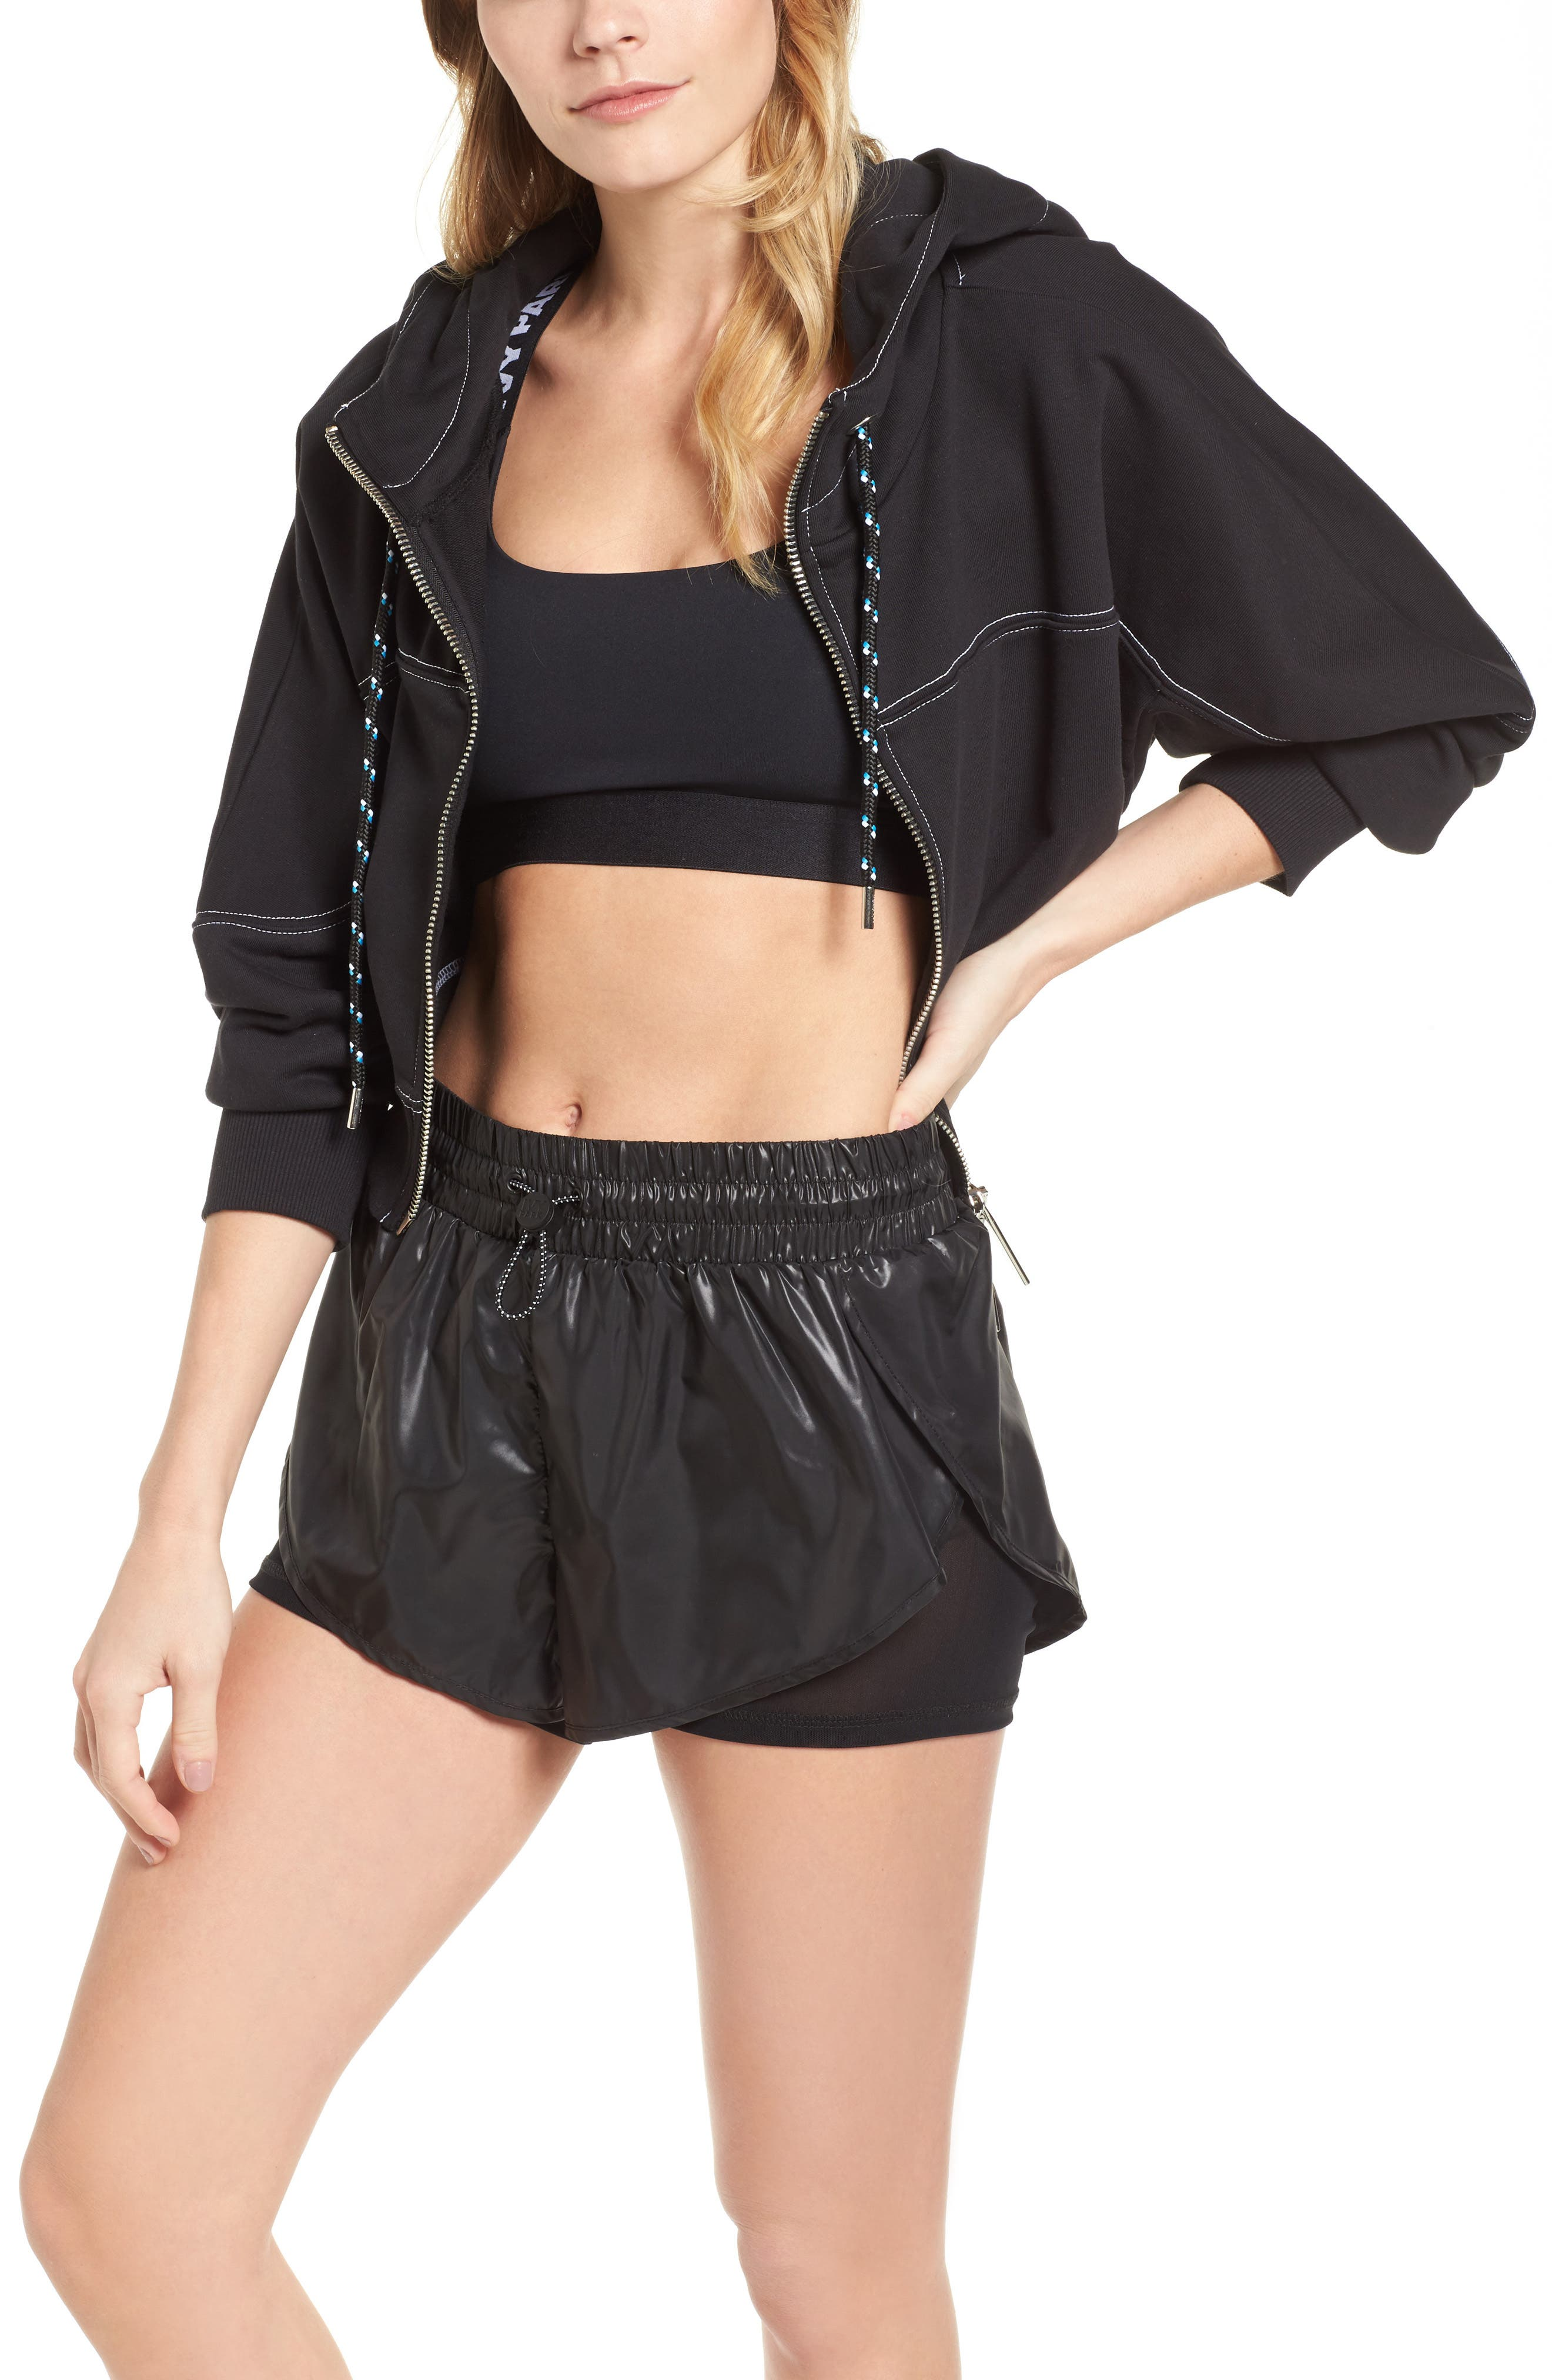 Main Image - IVY PARK® Lace-Up Back Zip Through Hoodie